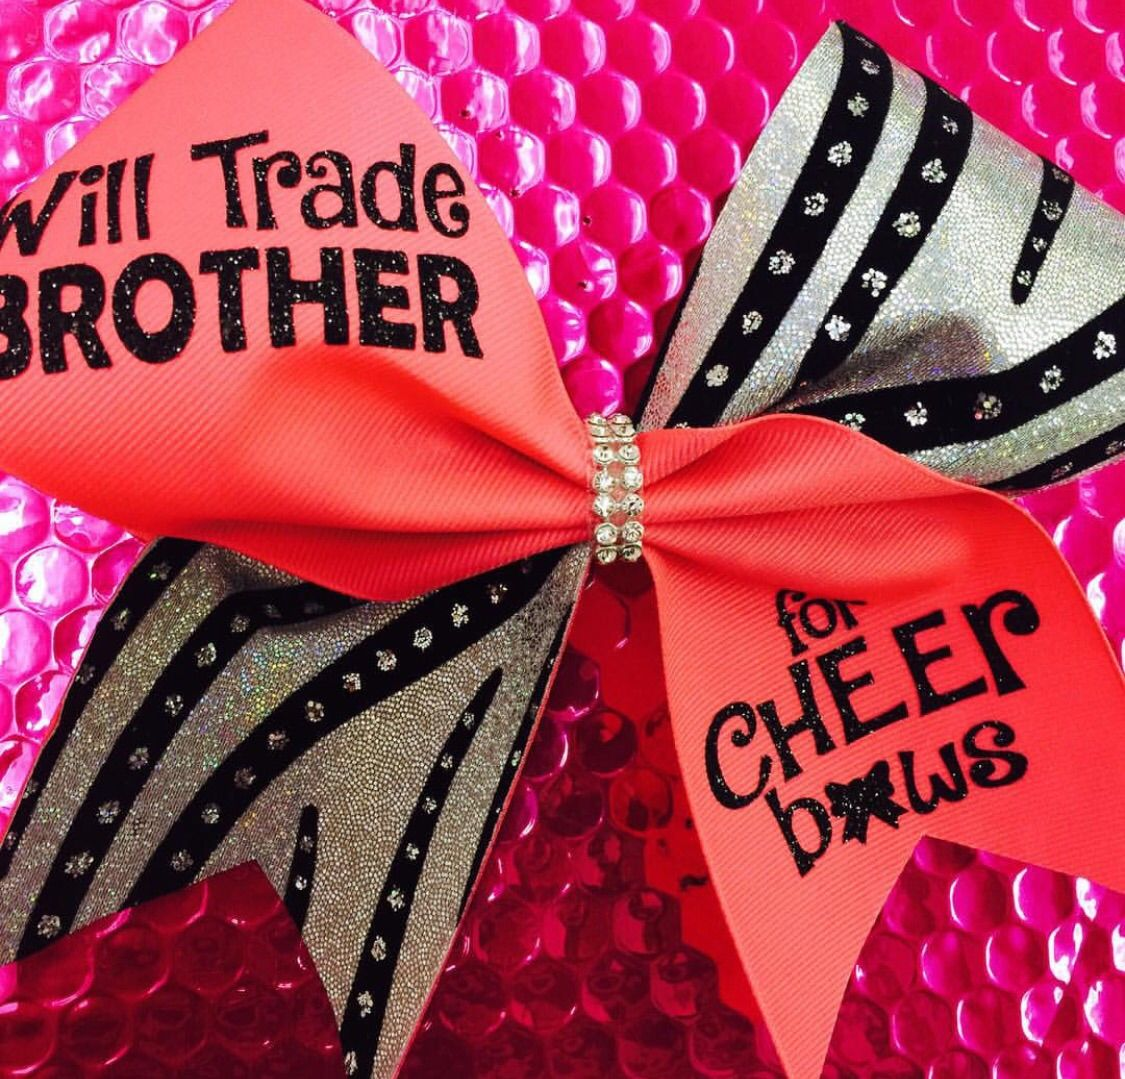 3d4466395a95ddcee7092ec751035c19 will trade brother rhinestone cheer bows, sequin, glitter